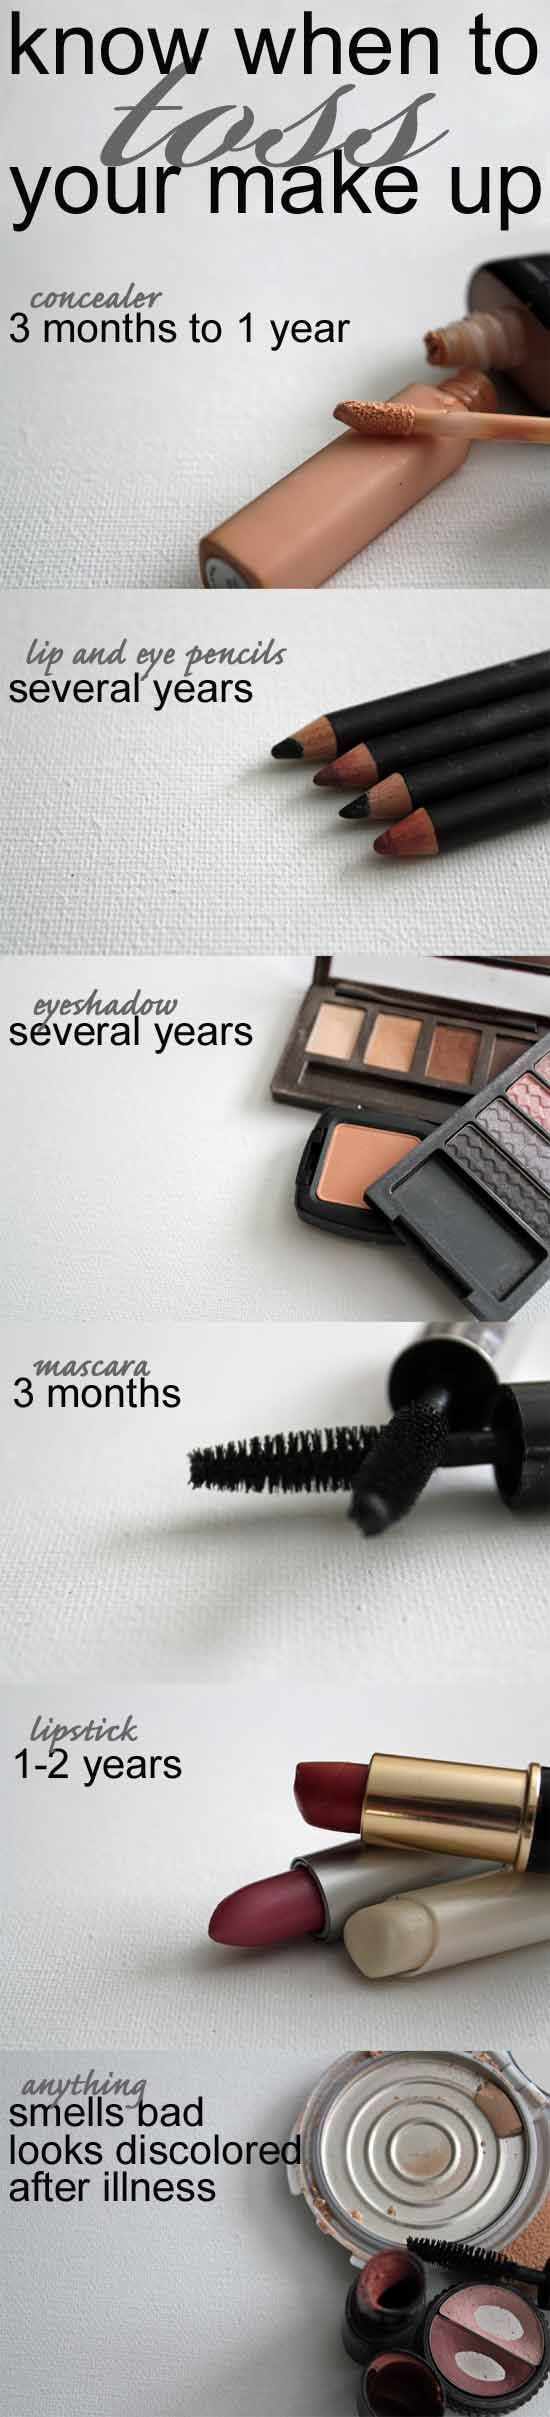 ... shelf life make up makeup shelves makeup looks makeup samples dates